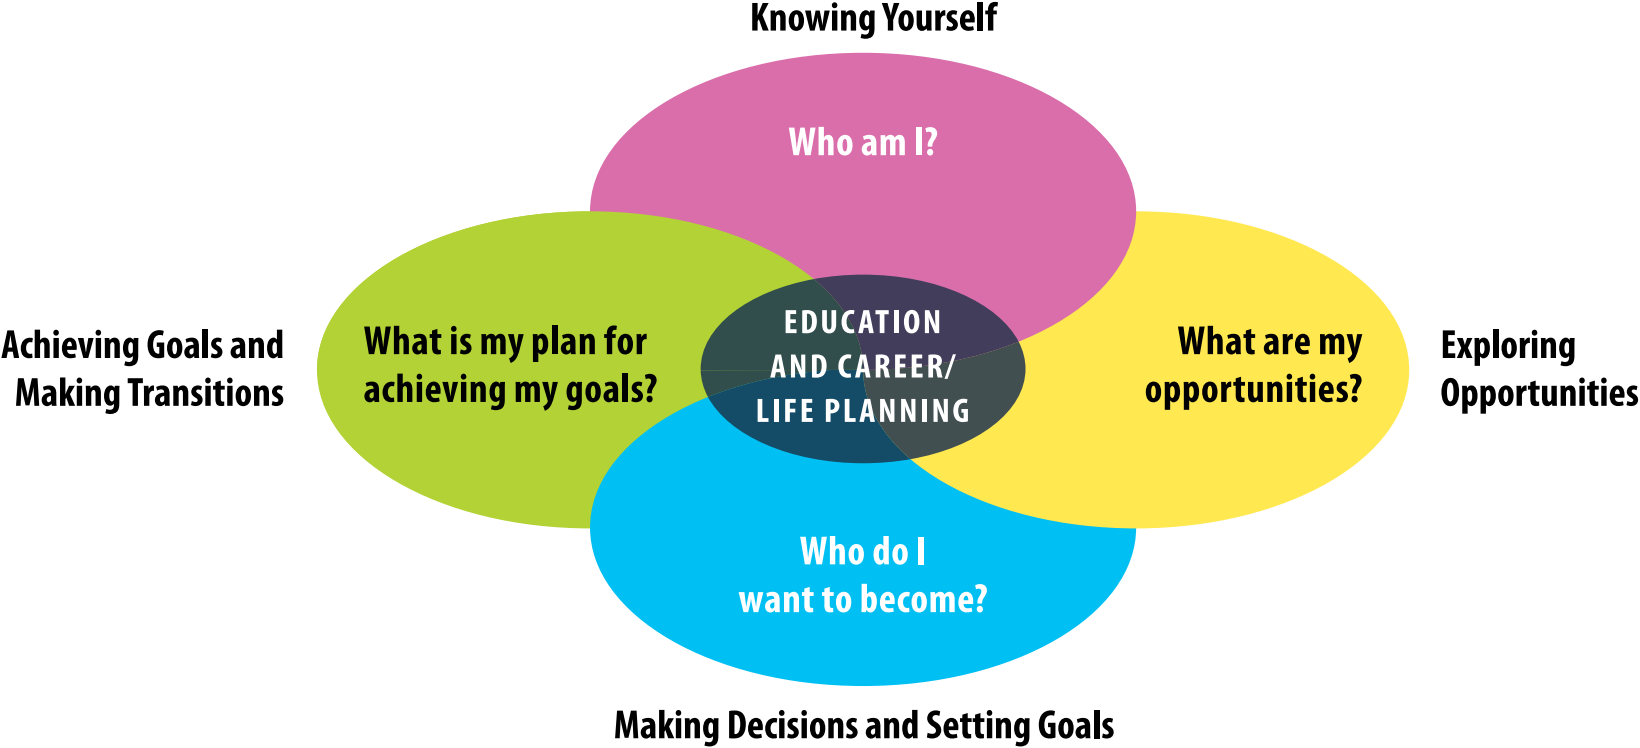 for teachers my path to success the term career has several meanings every person has a career which includes work learning community engagement and relationships family and